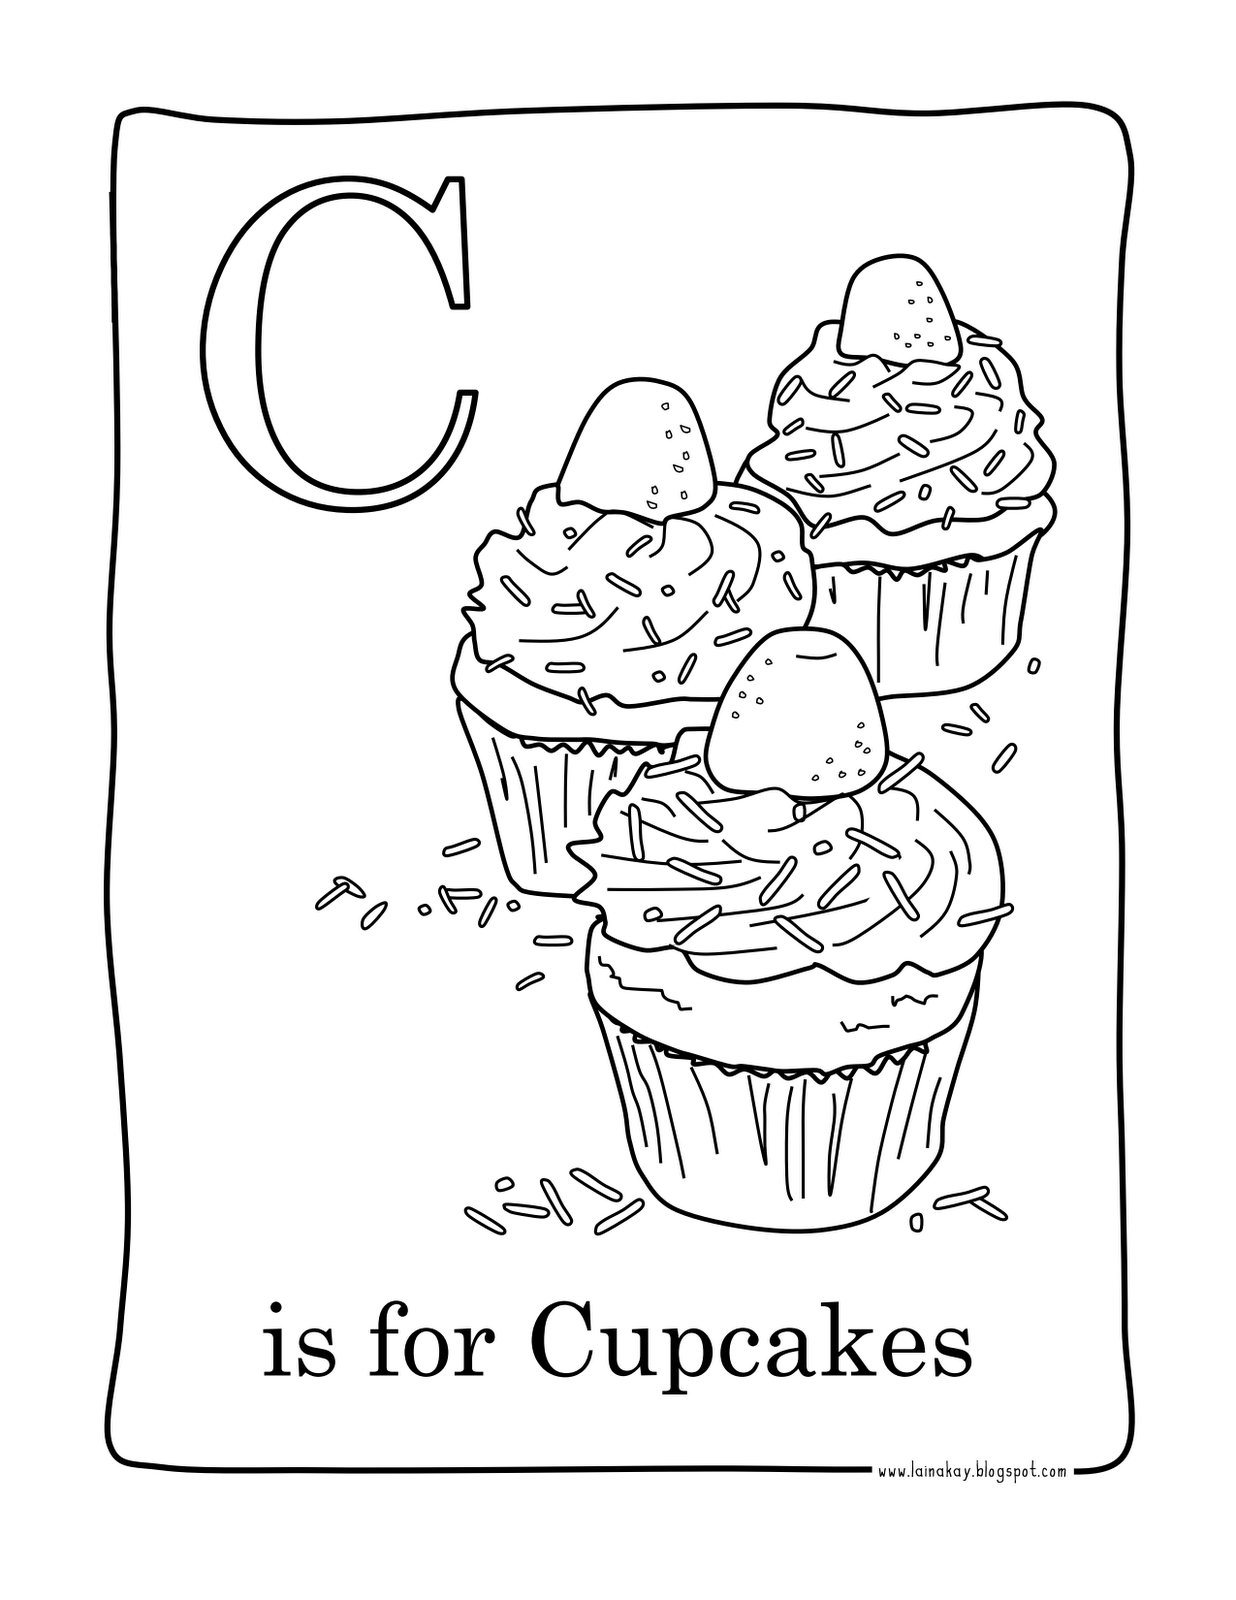 Goodness Gracious C Is For Cupcakes